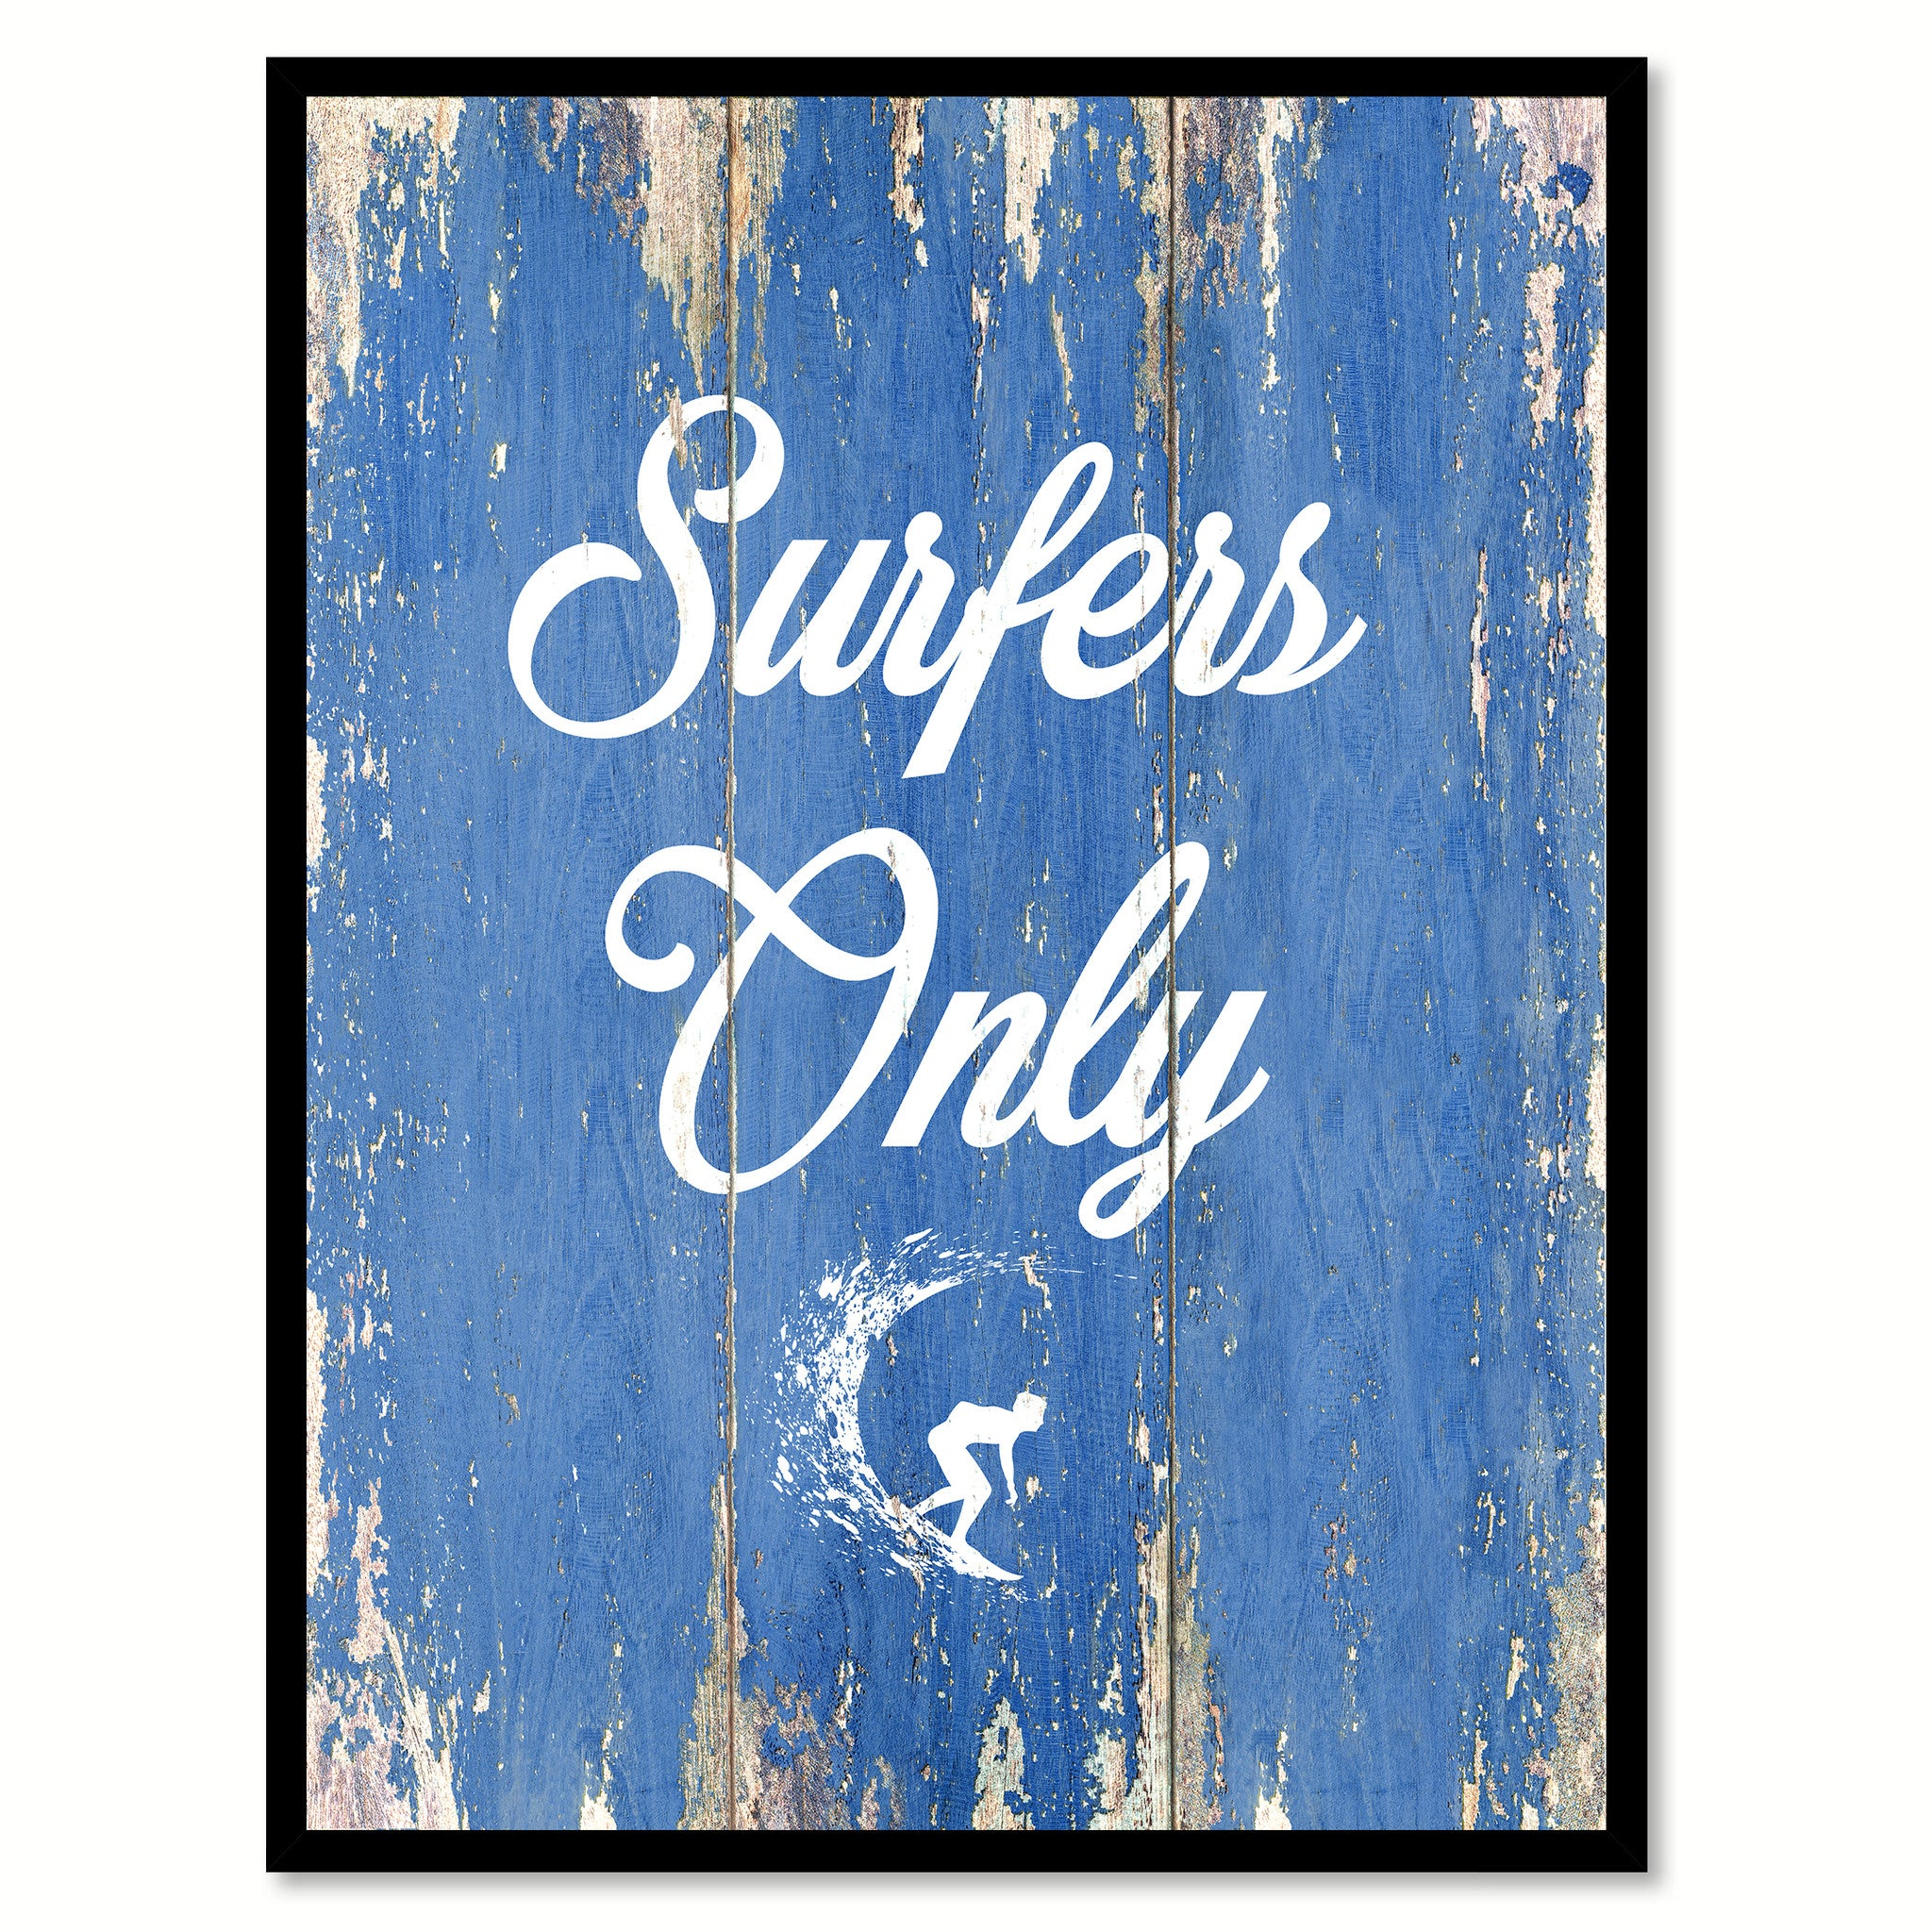 Only Surfer Quote Saying Canvas Print With Custom Picture Frame Gifts Home Decor Wall Art – SpotColorArt